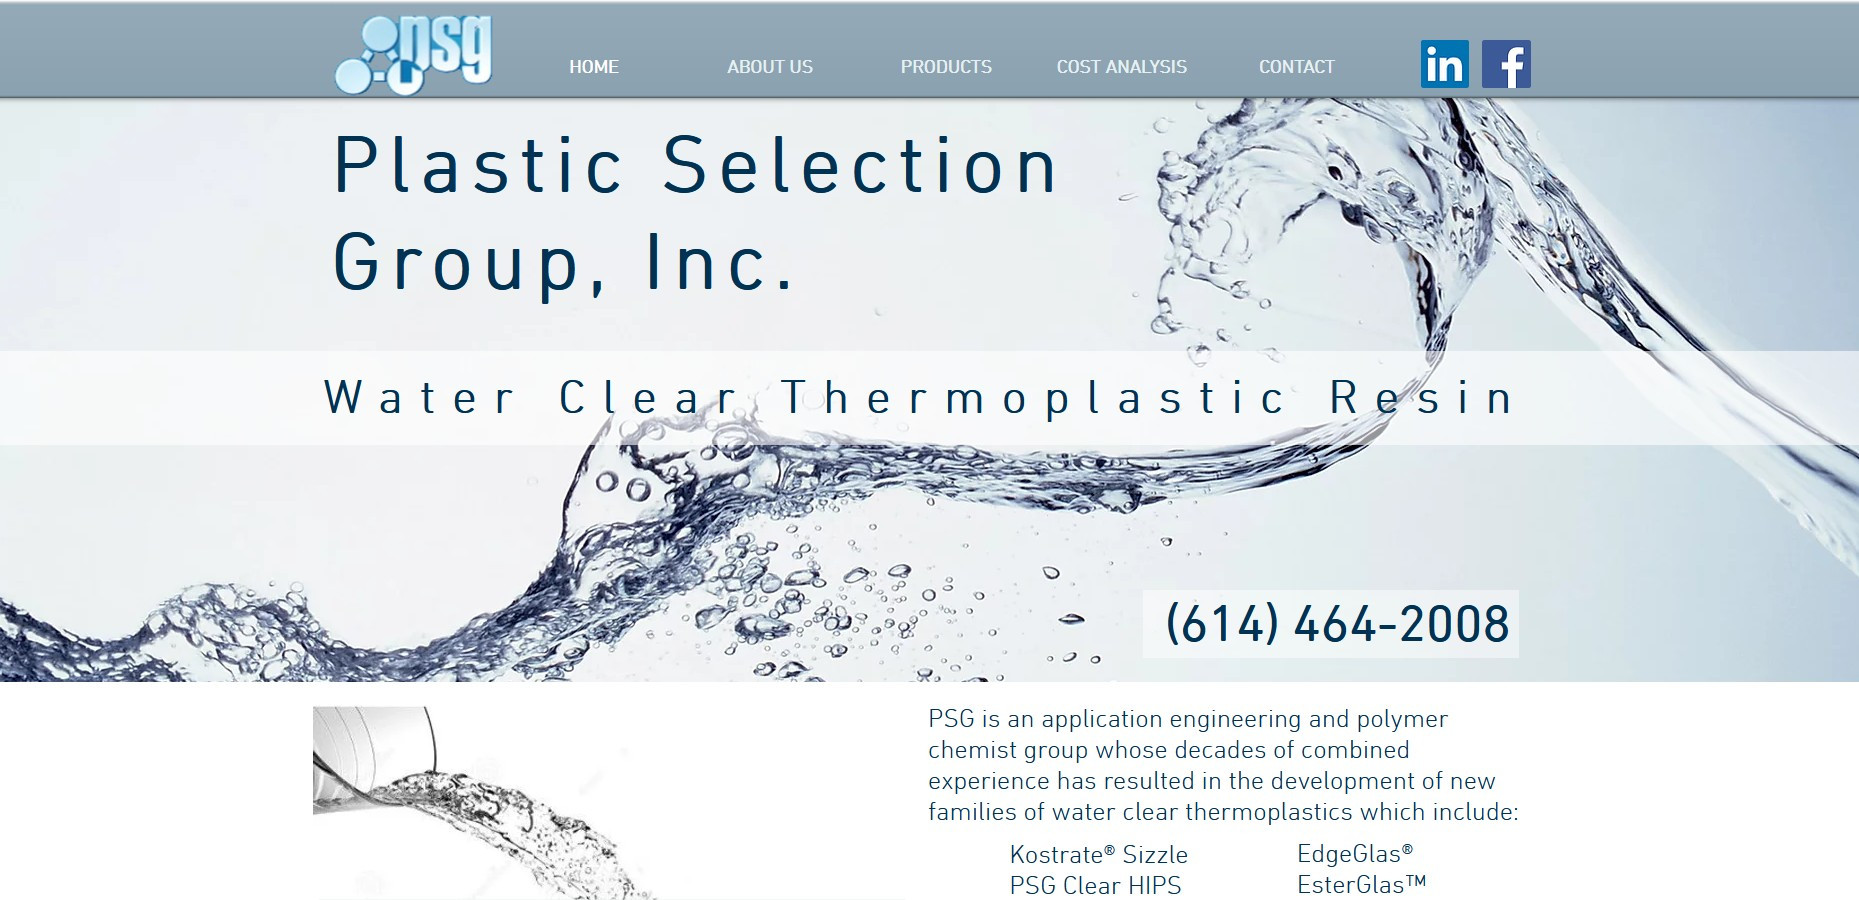 Plastic Selection Group- Application Engineering and Polymer Chemist Group